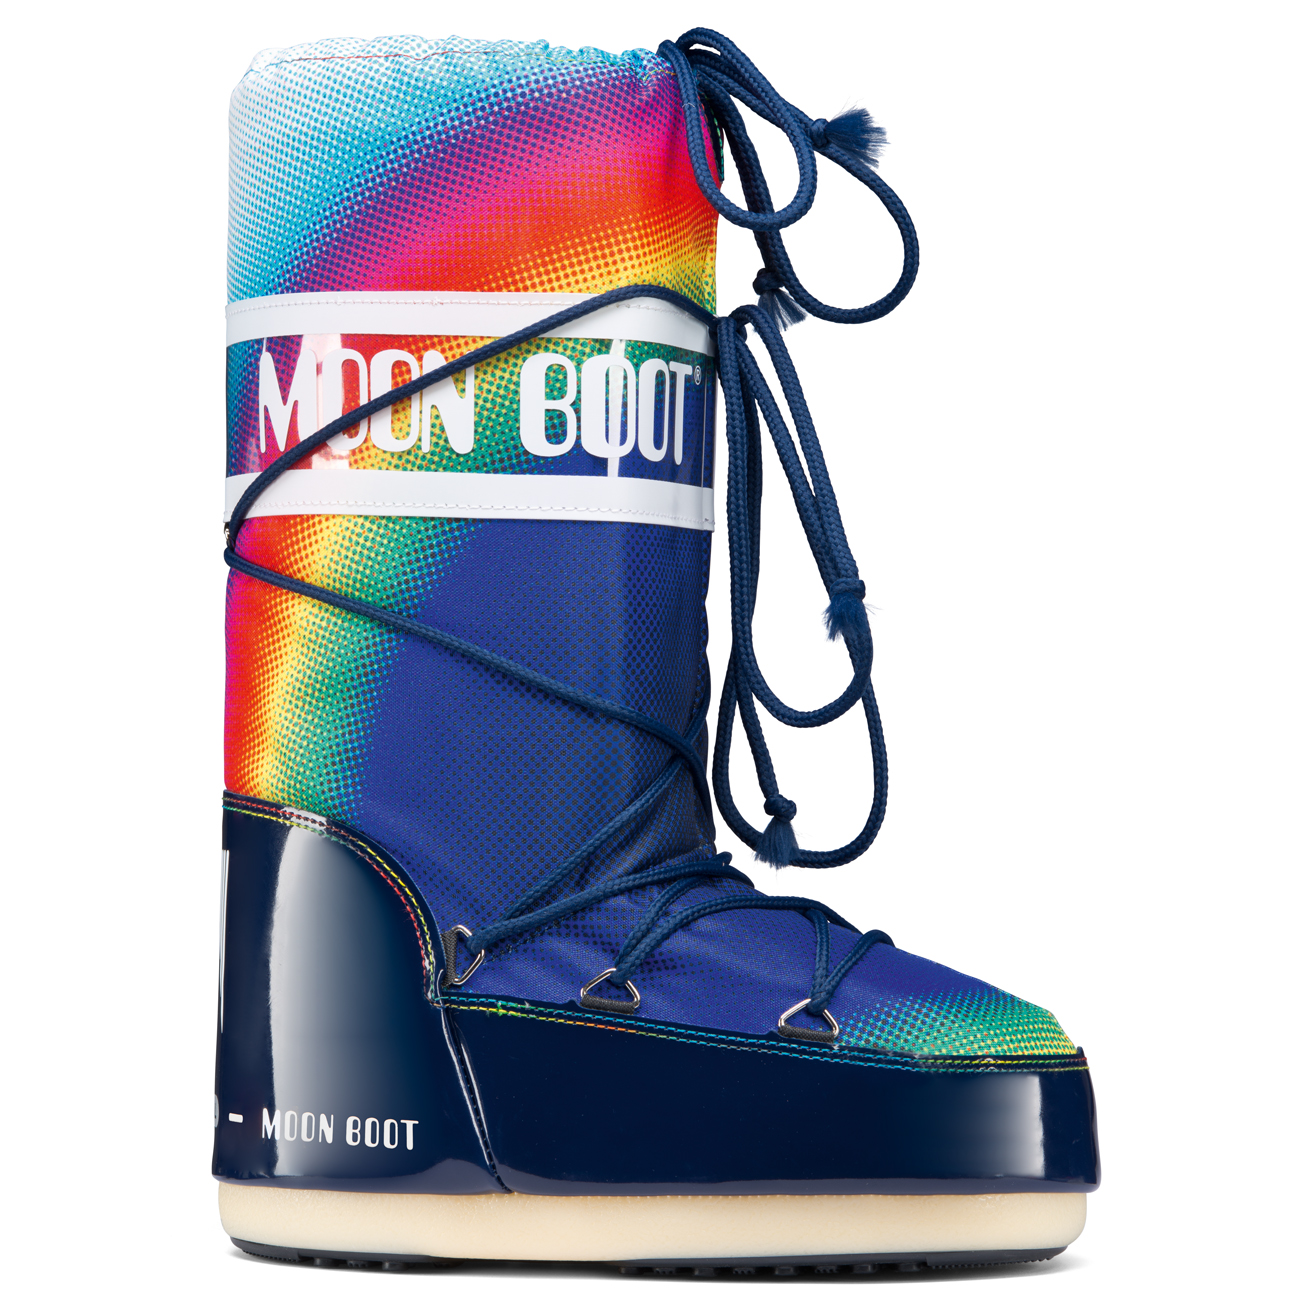 Unisex Adults Moon Boot New Rainbow 2.0